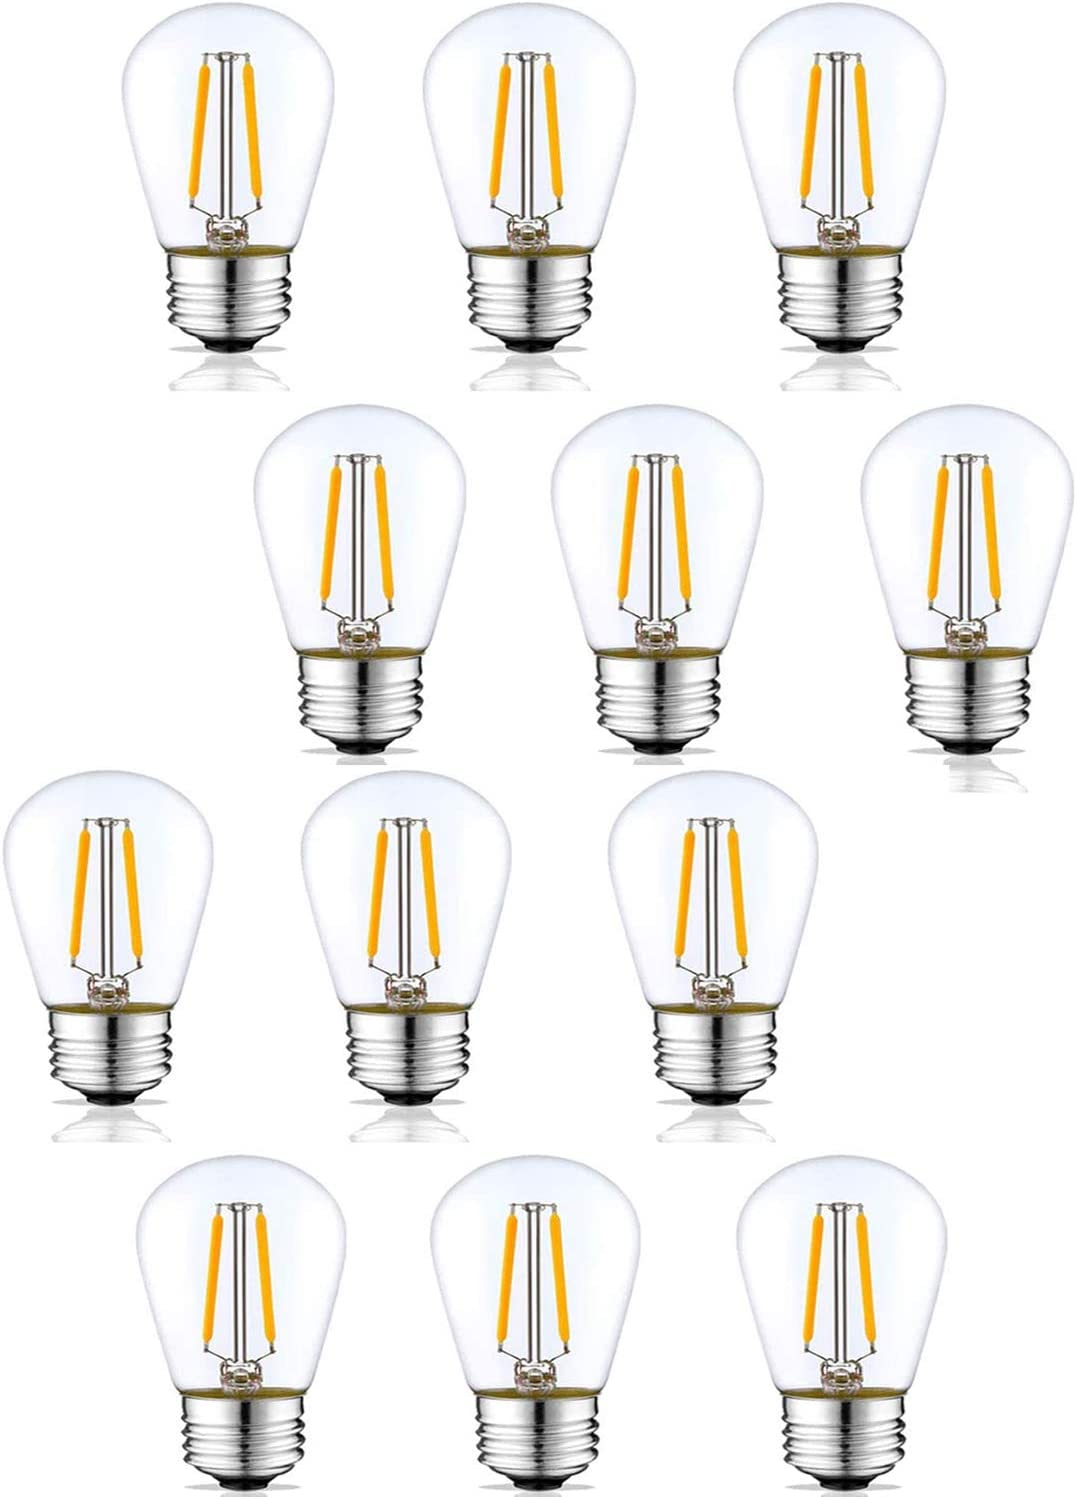 S14 LED Outdoor Edison Light Bulbs for String Light Replacement,2W,E26 Medium Screw Base,Nondimmable, Replace 11w Incandescent Bulb, Waterproof, Glass Bulb (3000K-12pack)